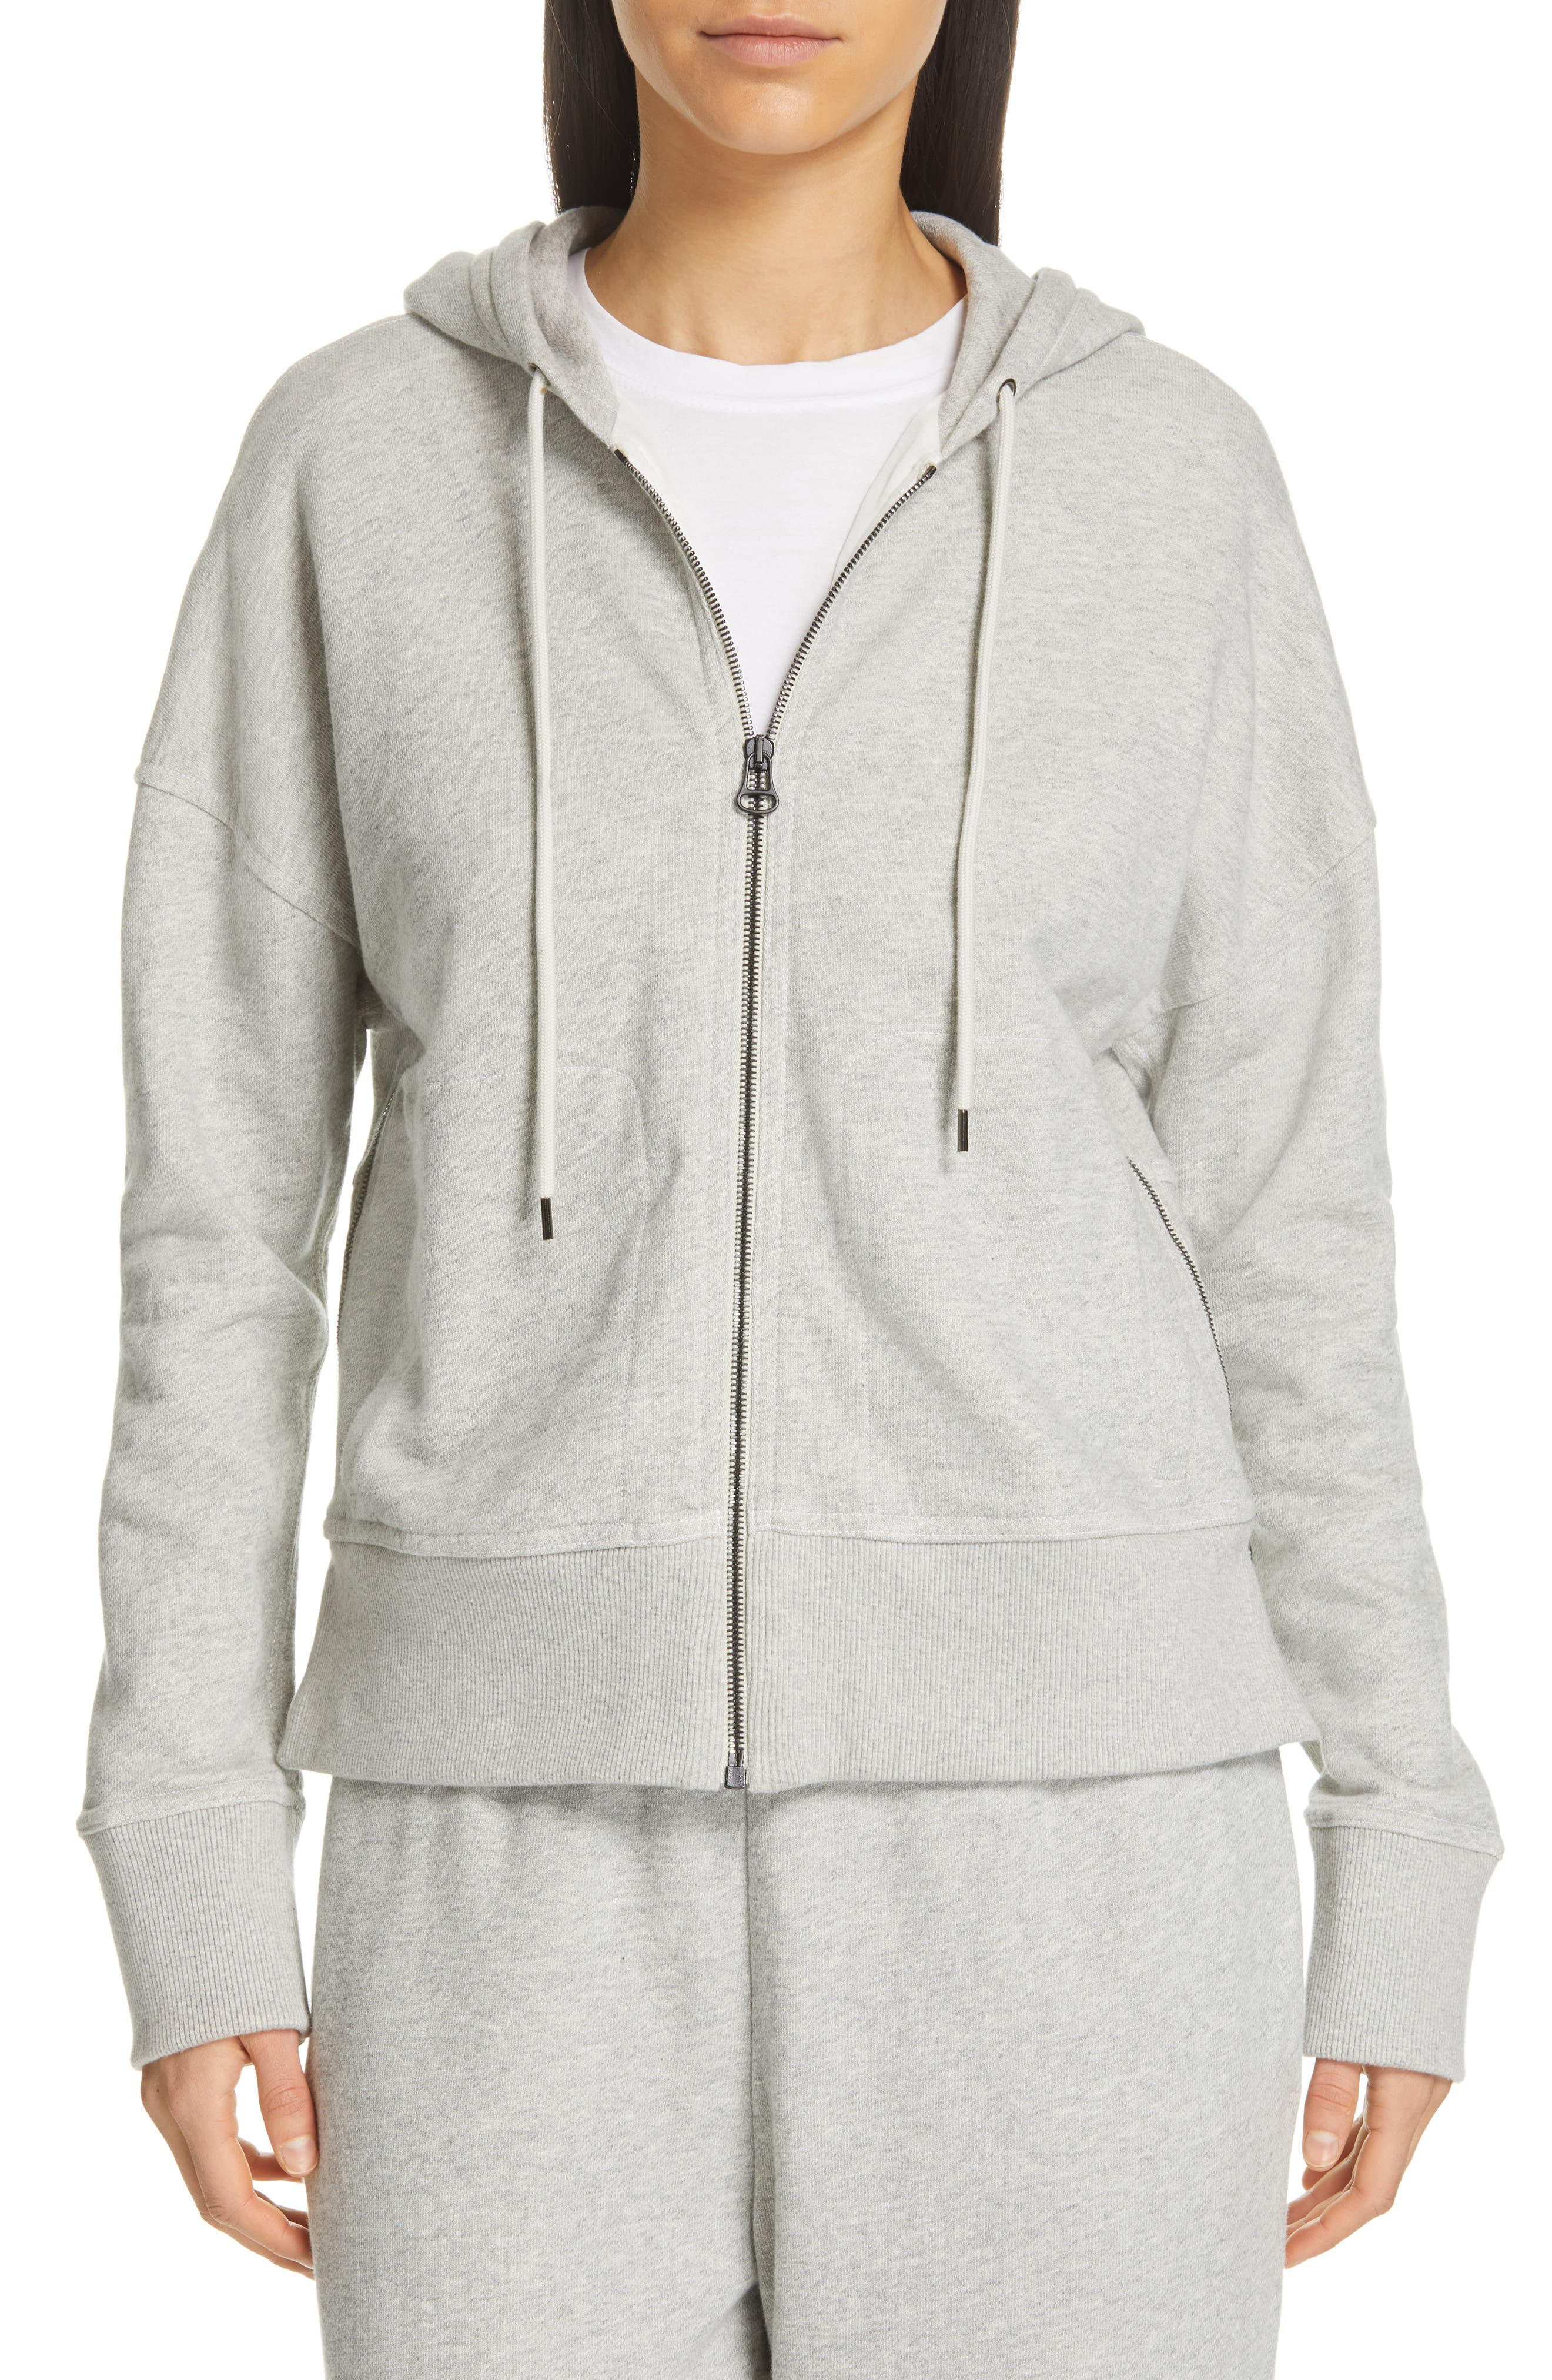 19300020 James Perse All Women | Nordstrom